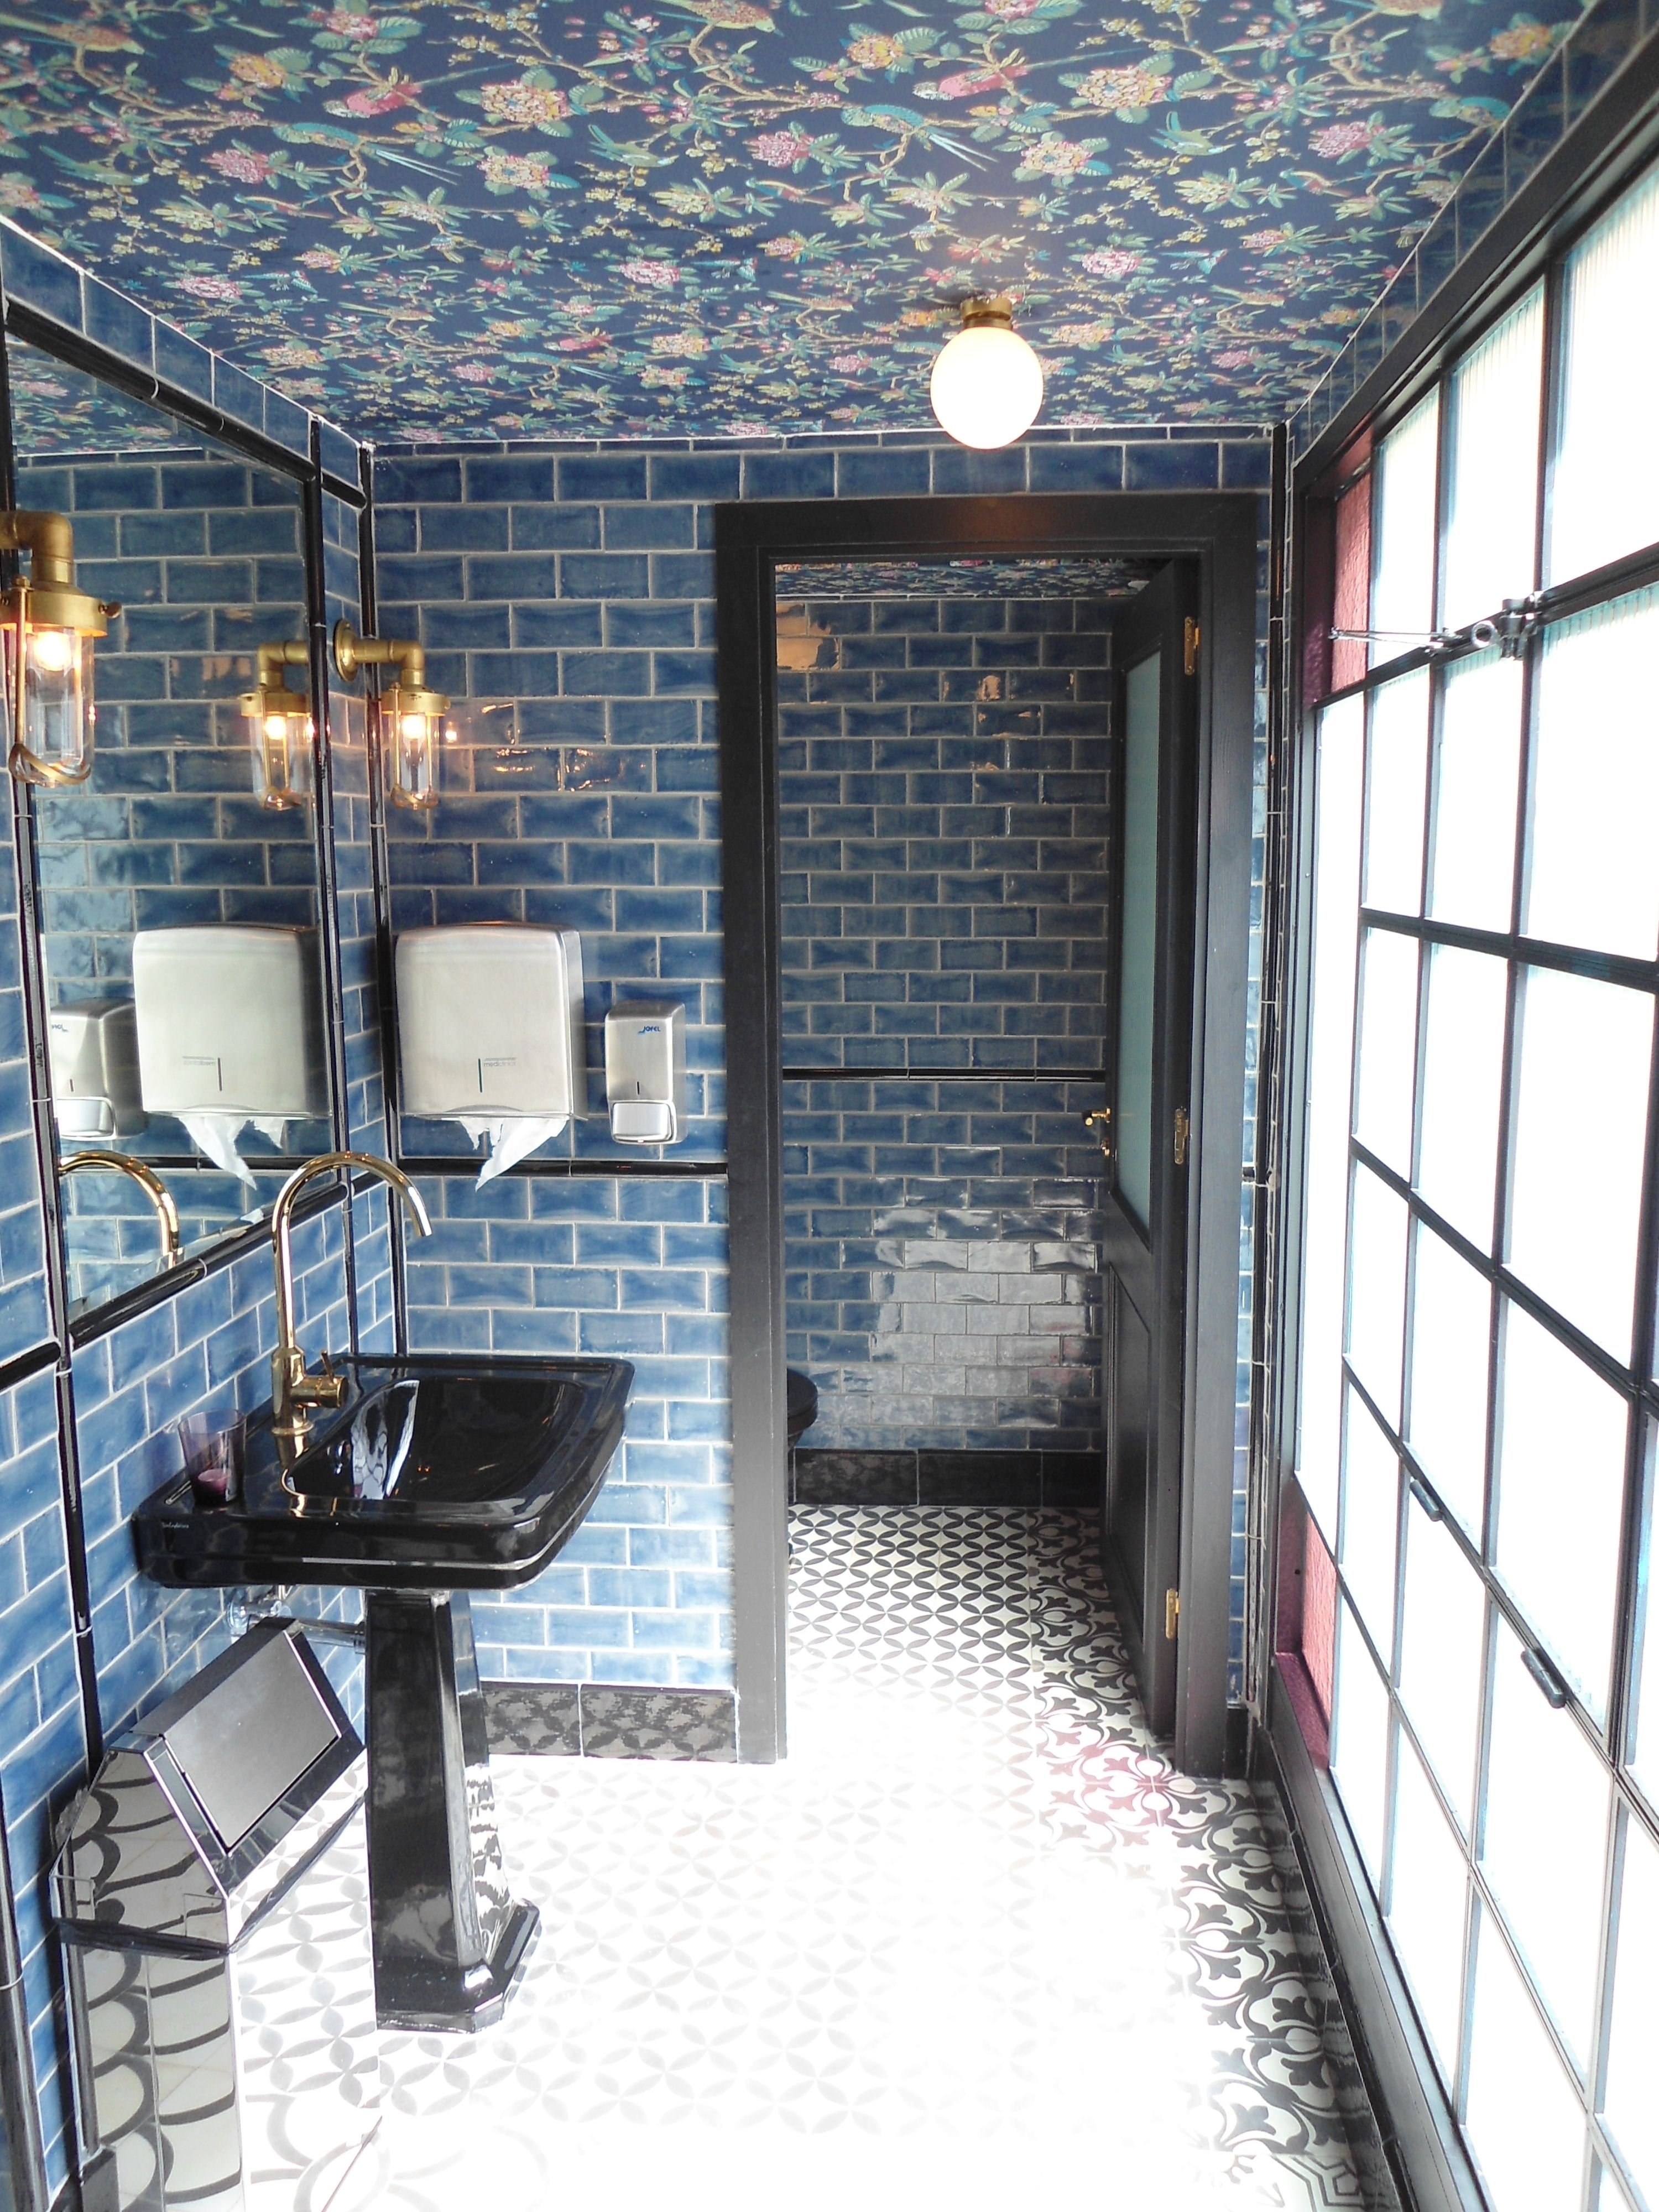 Subway tile, wallpaper on the ceiling, and a brass faucet